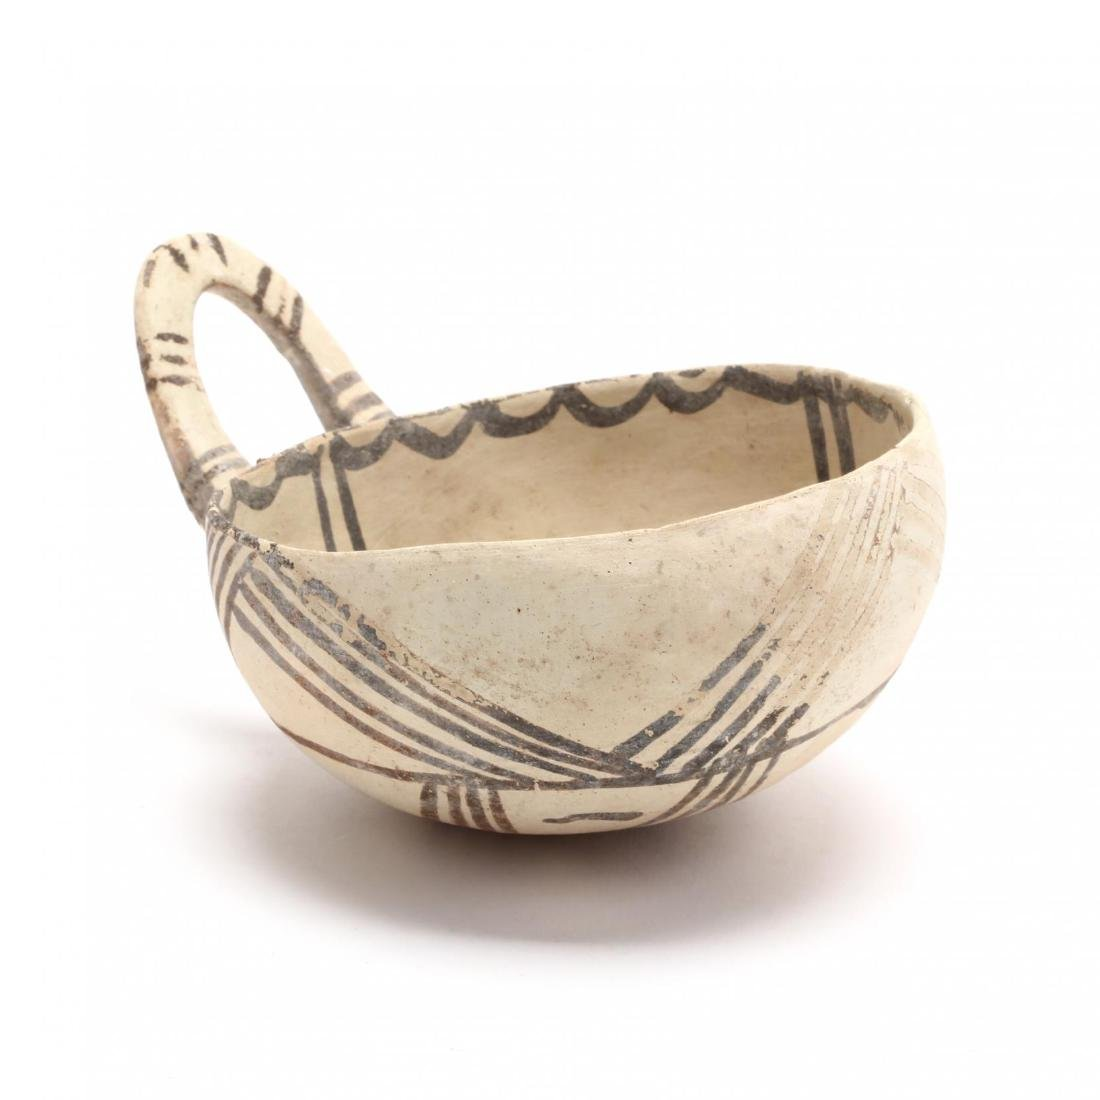 Cypriot Middle Bronze Age White Painted Ware Bowl or